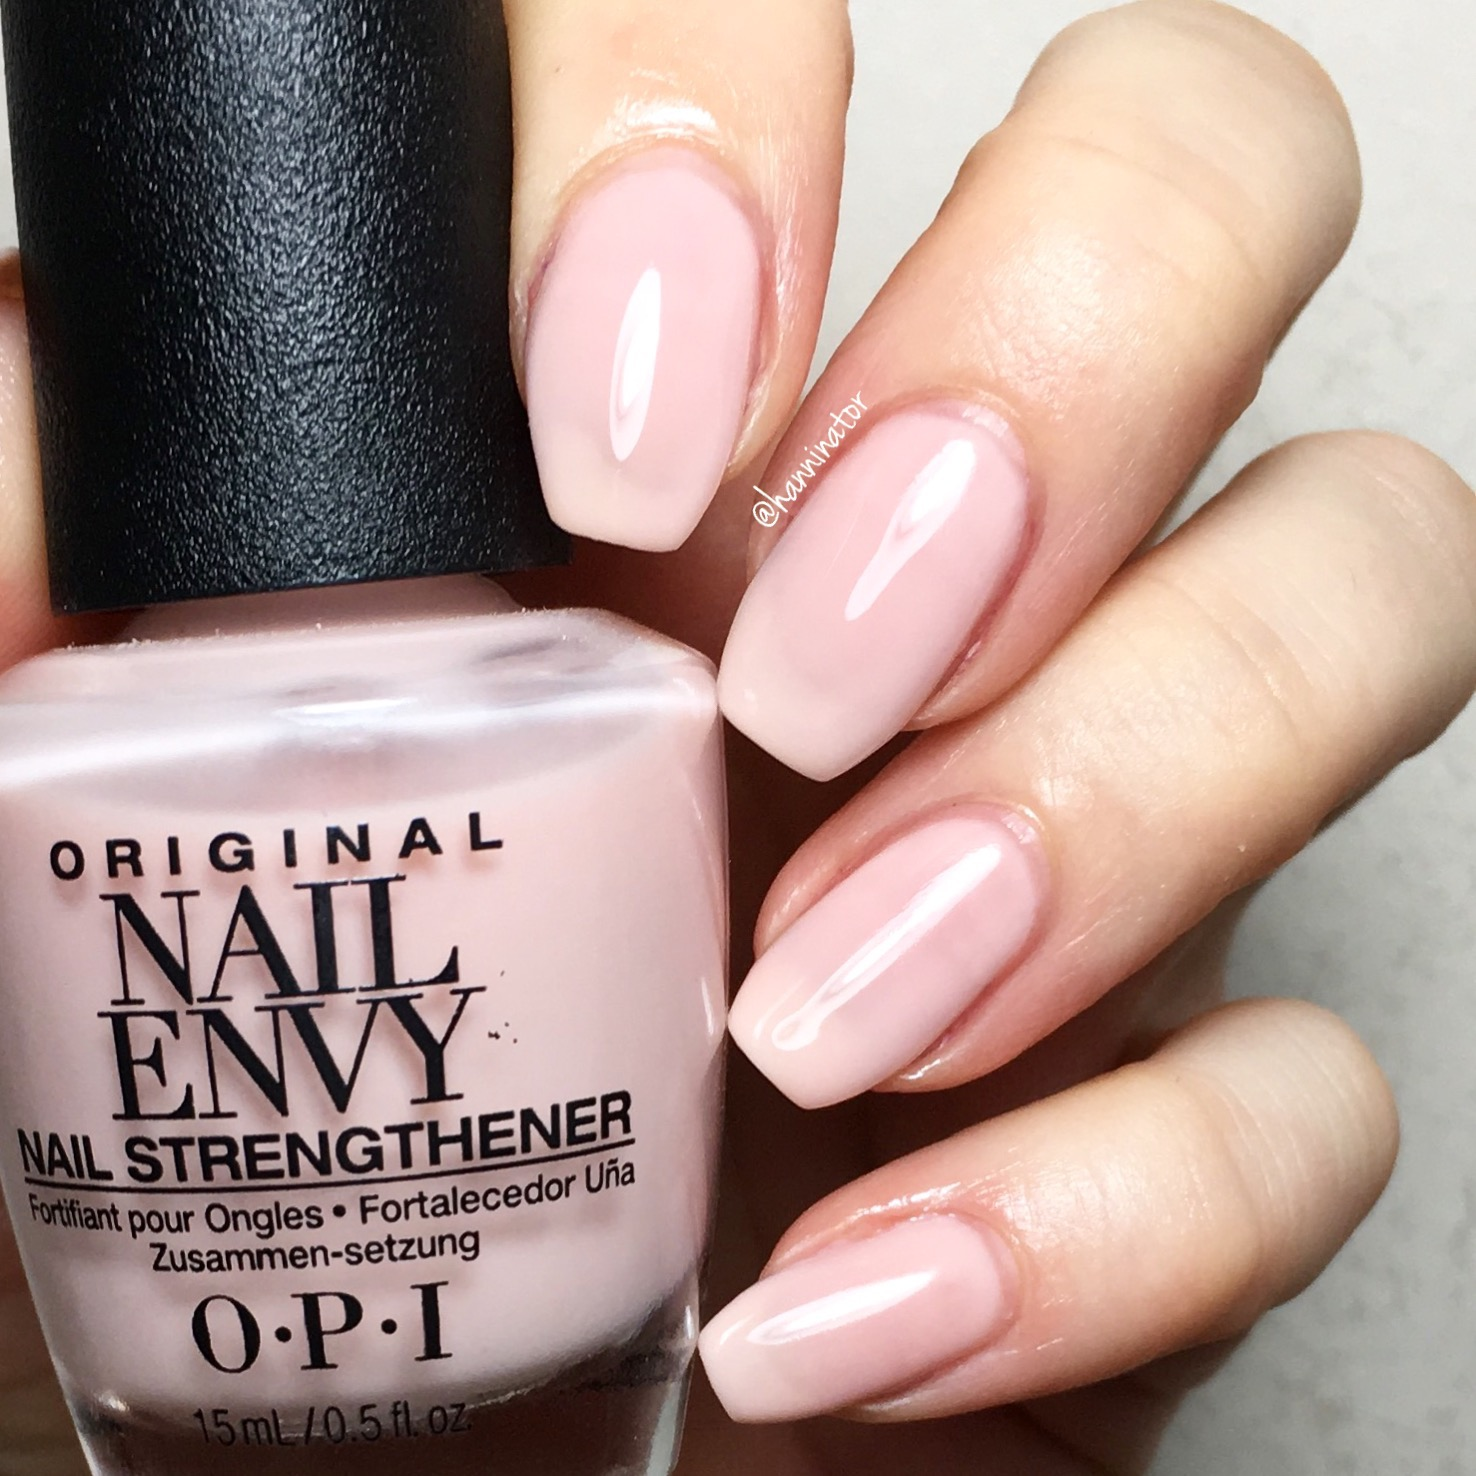 Opi Nail Envy Bubble Bath Hanninator